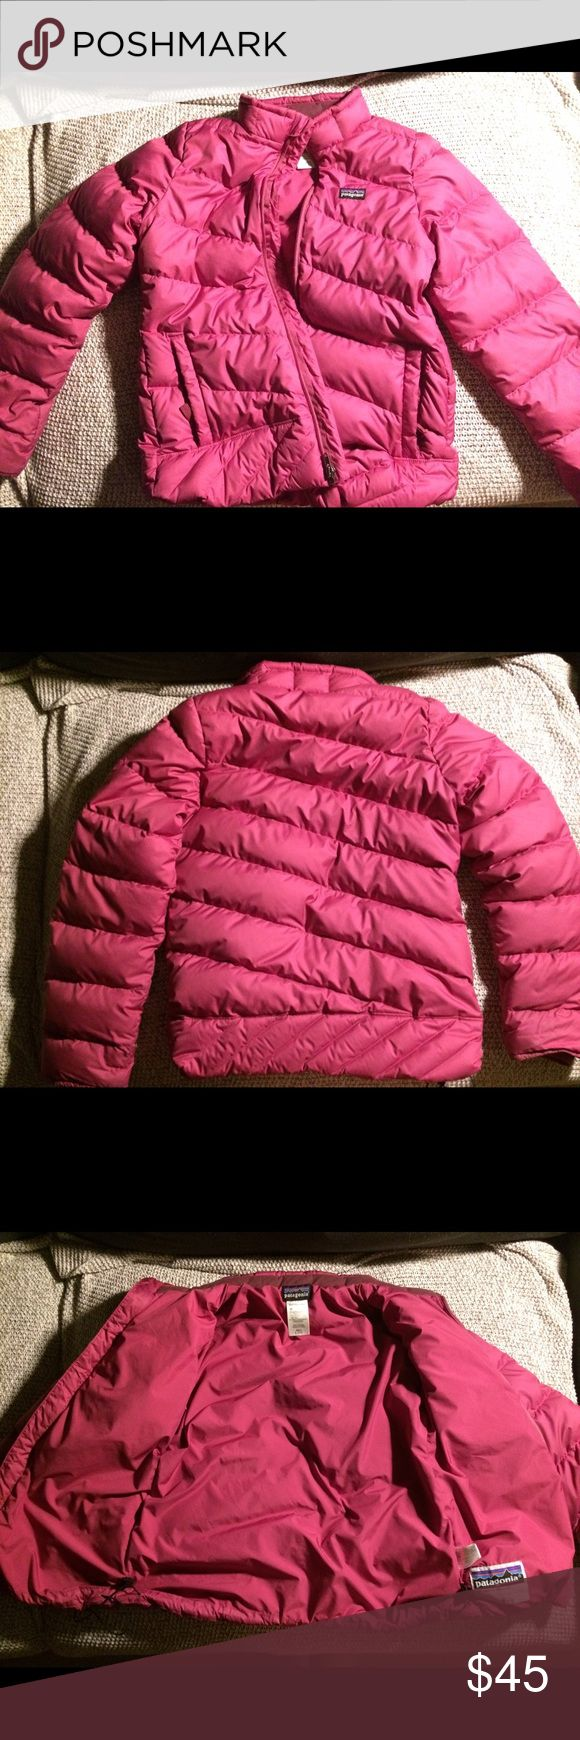 Girls Patagonia puffer Great condition, very warm puffer jacket, size large (12) in girls, drawcord at hem to keep cold air out. There are a few spots on the one sleeve - 3 small hard to see shadowy spots circled in white in the photos that I wanted to disclose anyway and one small, light pen/pencil mark. Patagonia Jackets & Coats Puffers